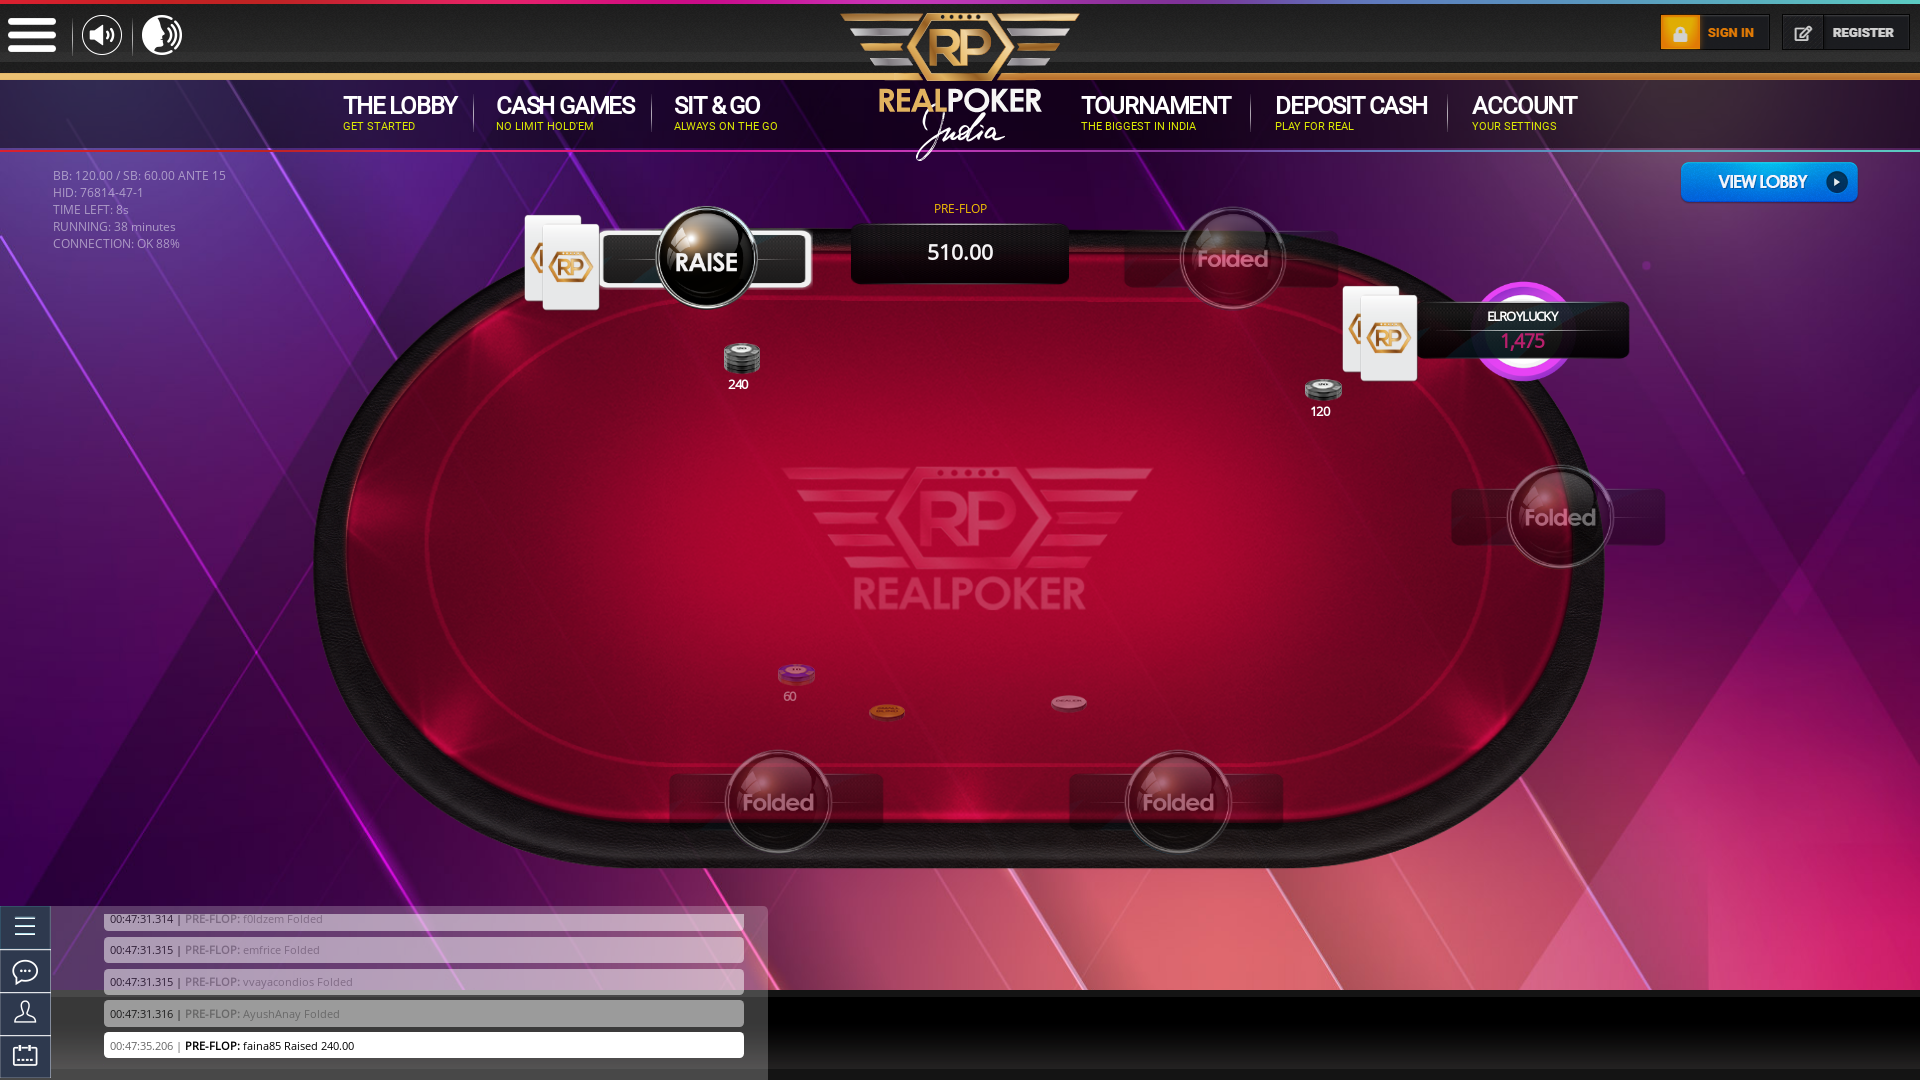 Real poker on a 10 player table in the  game